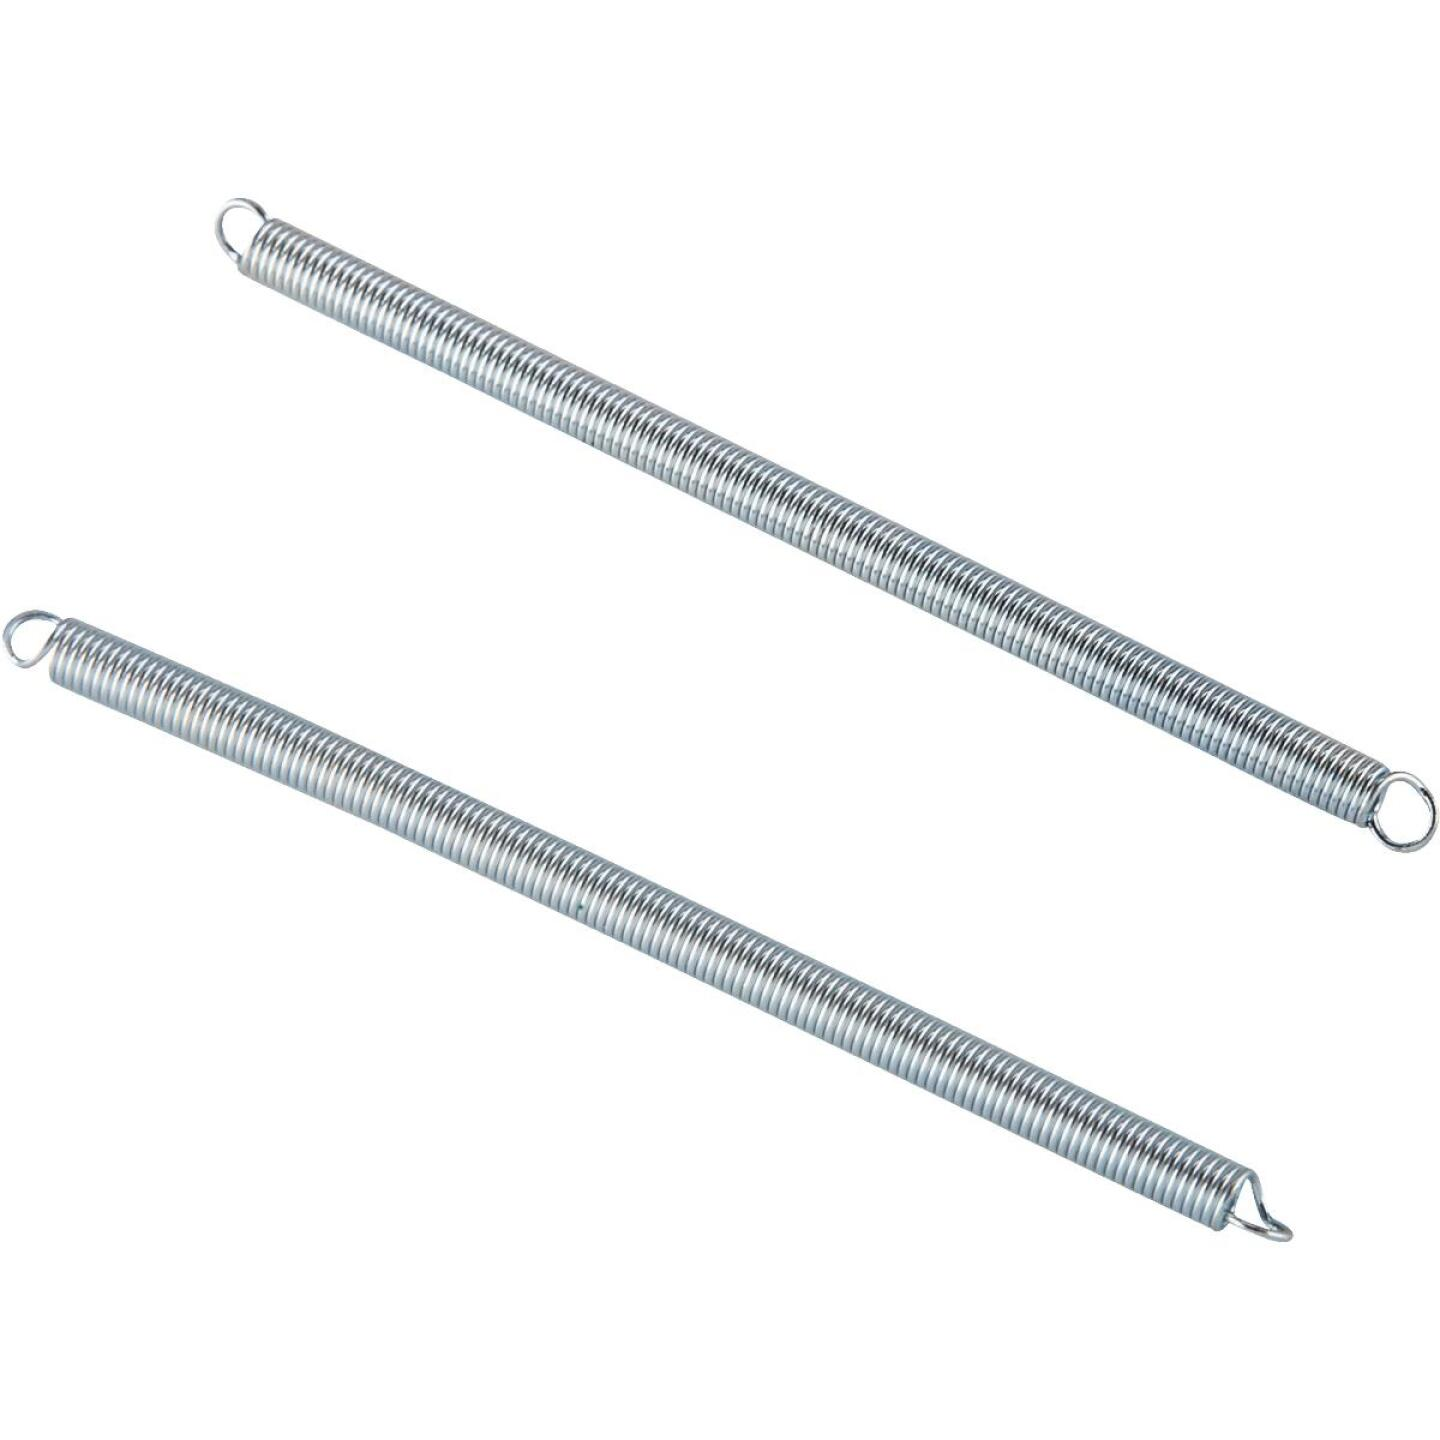 Century Spring 1-7/8 In. x 7/16 In. Extension Spring (2 Count) Image 1